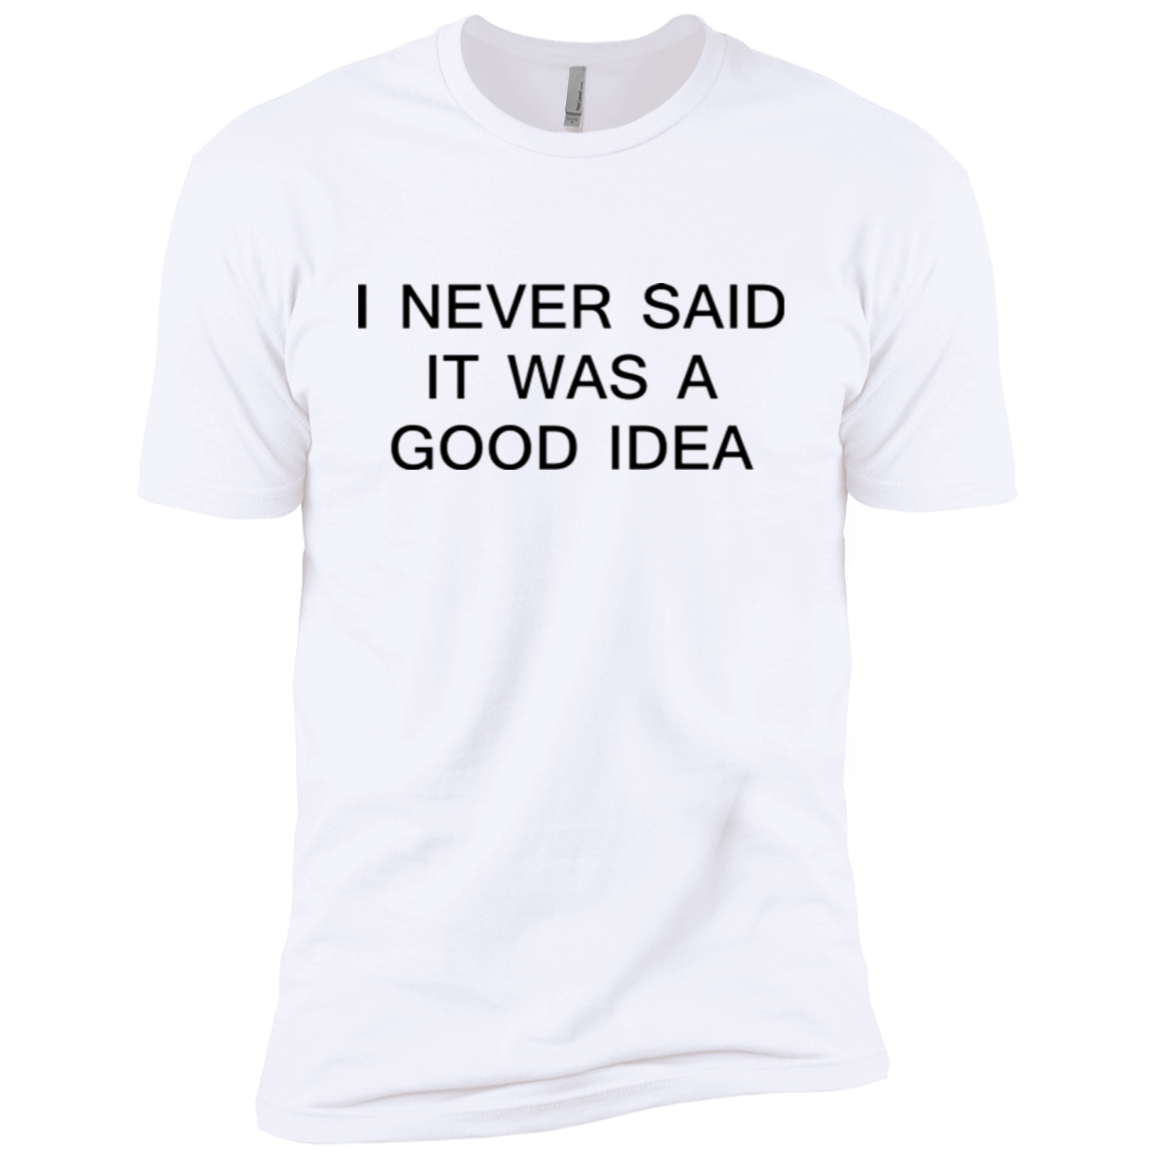 I Never Said it was a Good Idea Men's Classic Tee - Trendy Tees